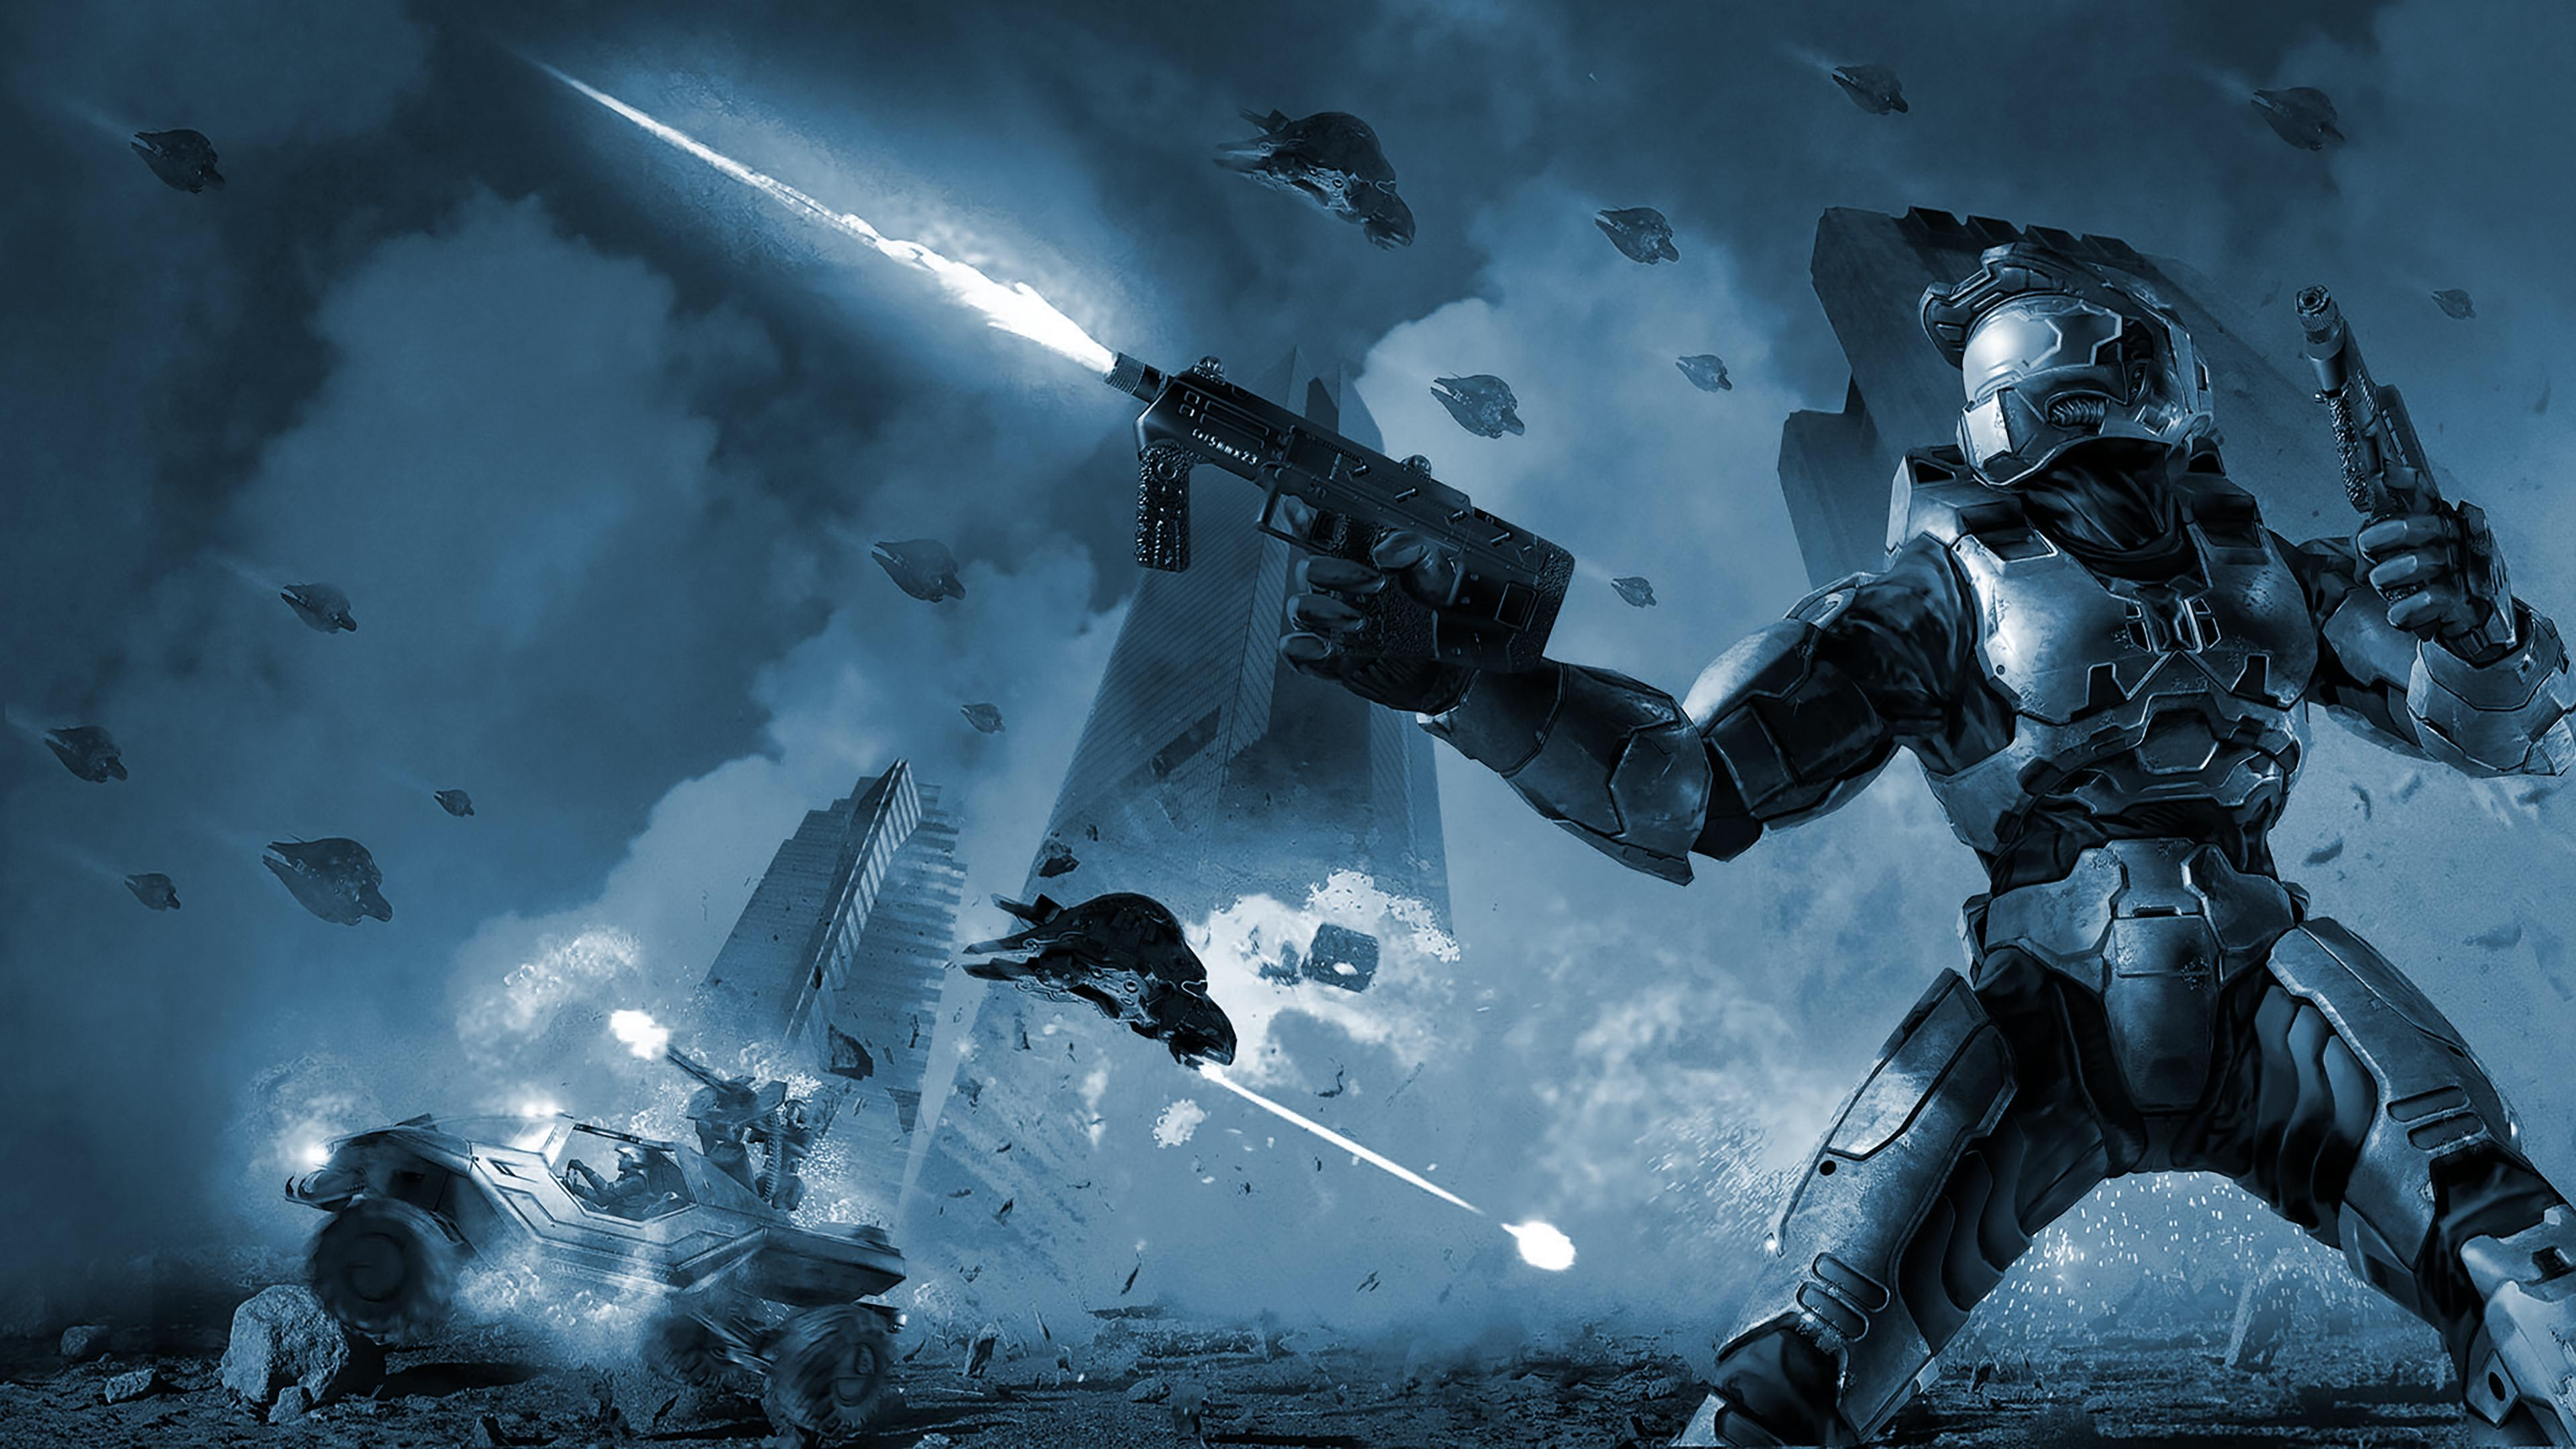 Halo 3 Wallpapers Top Free Halo 3 Backgrounds